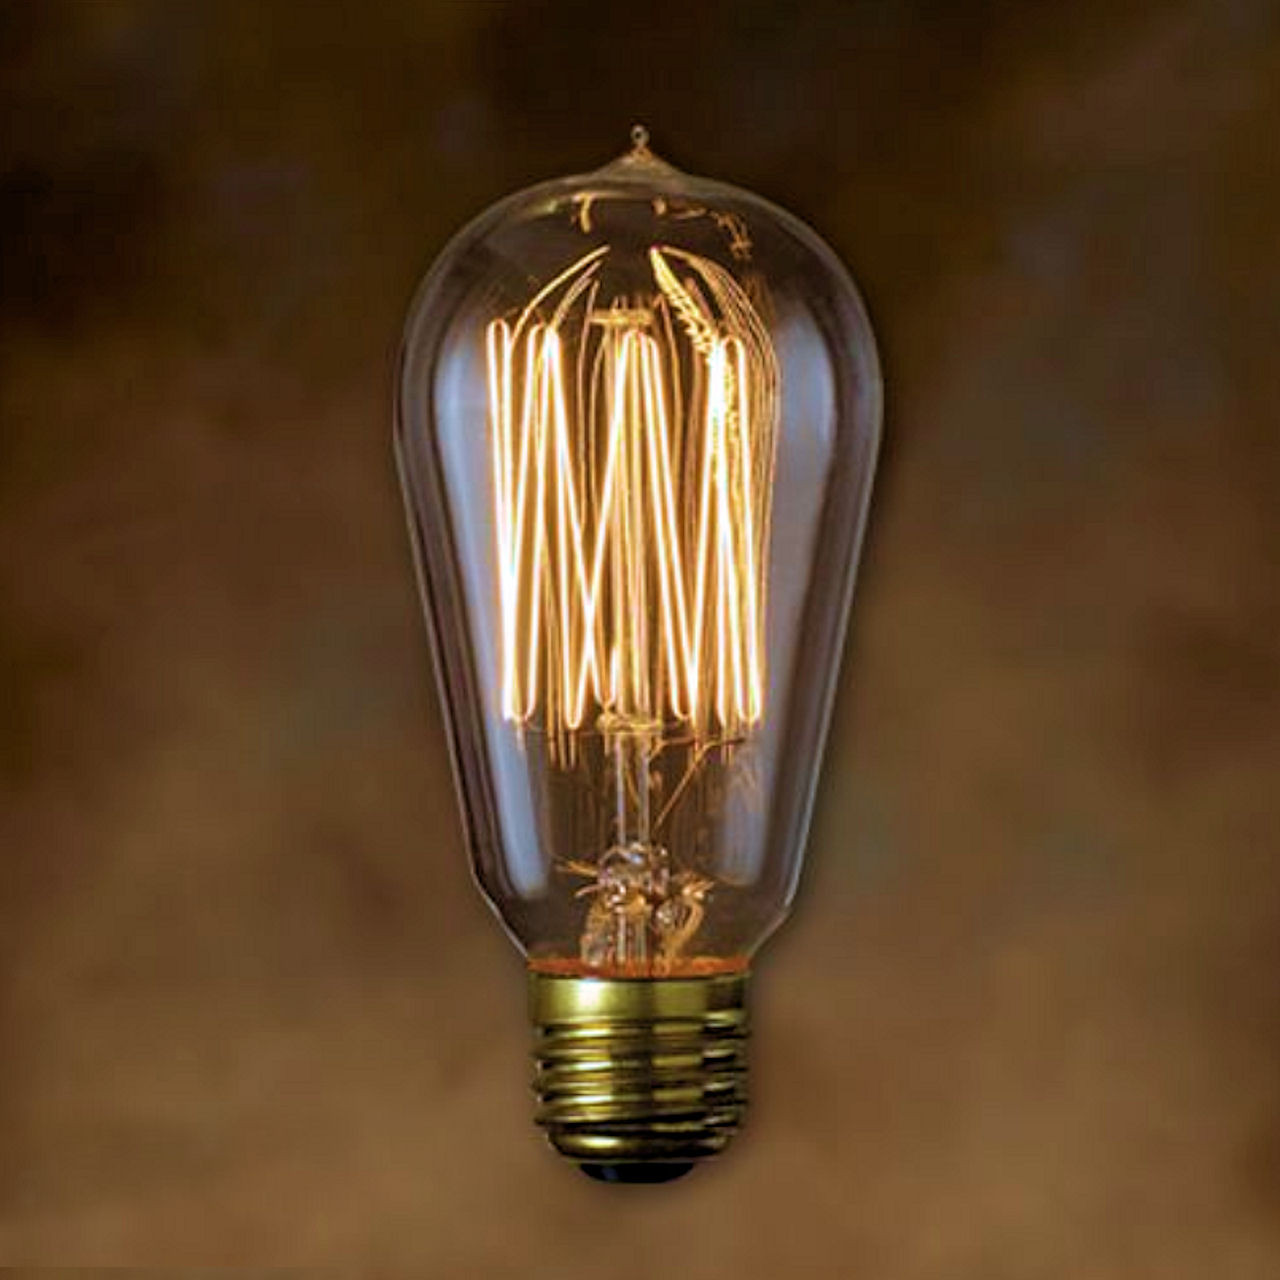 60w Light Bulb Bulbrite Nostalgic Antique St18 Signature 60w Light Bulb Thread Filament